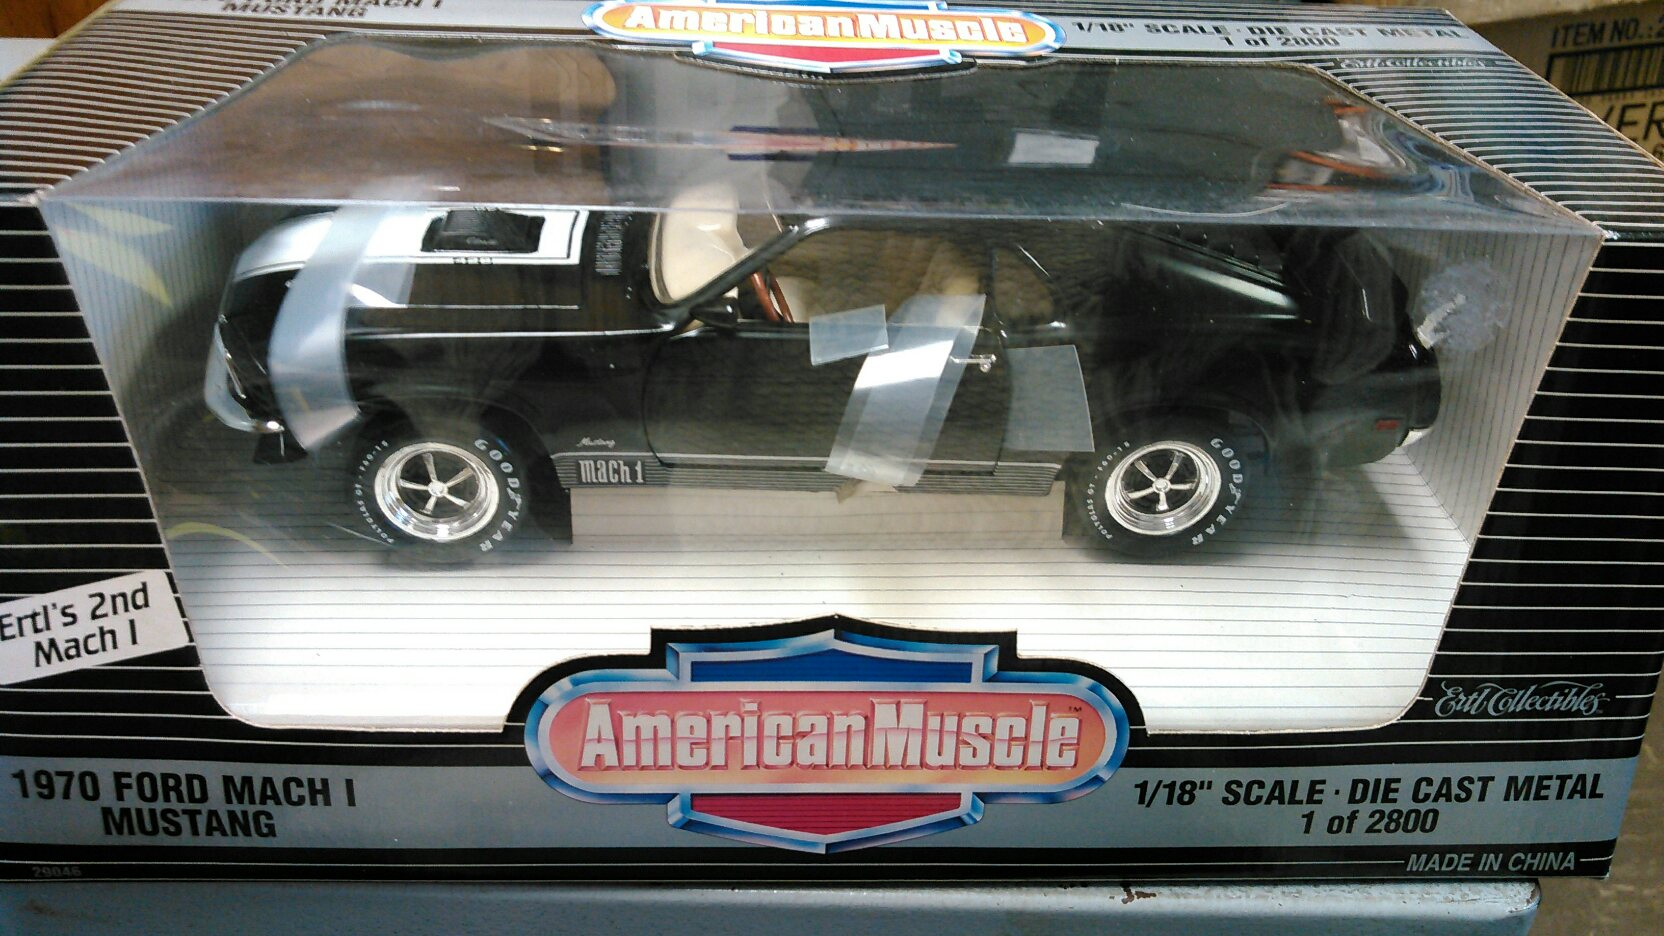 1970 ford mach 1 mustang larry 39 s diecast cars for 1970 mustang rear window louvers